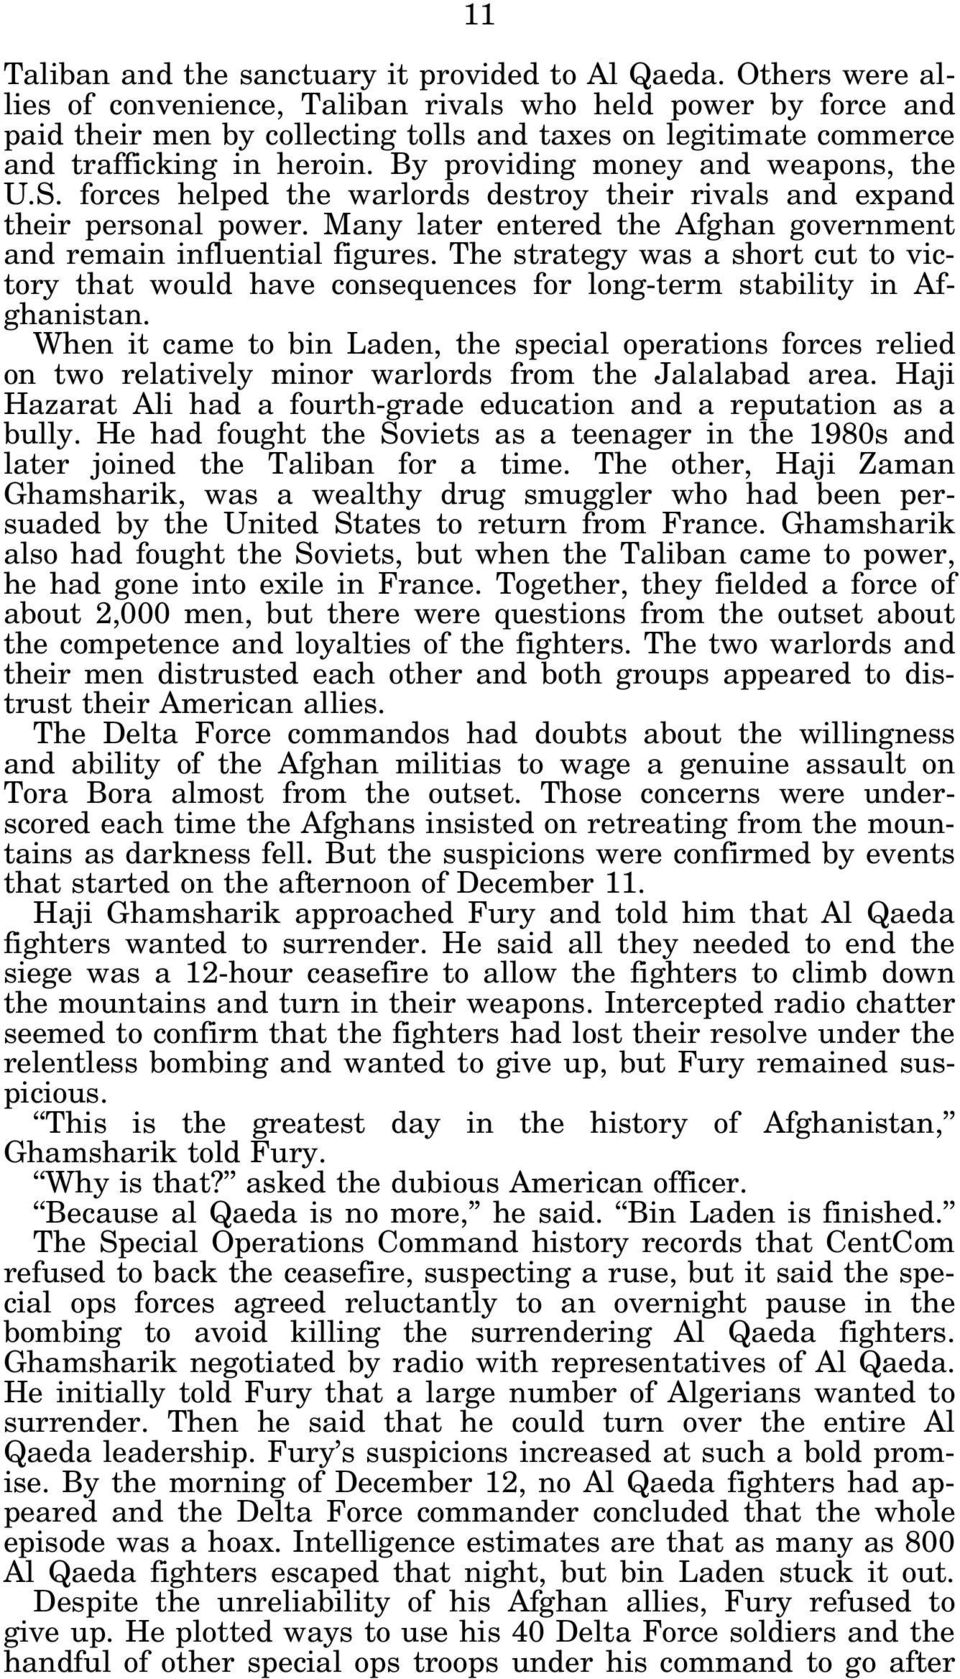 By providing money and weapons, the U.S. forces helped the warlords destroy their rivals and expand their personal power. Many later entered the Afghan government and remain influential figures.